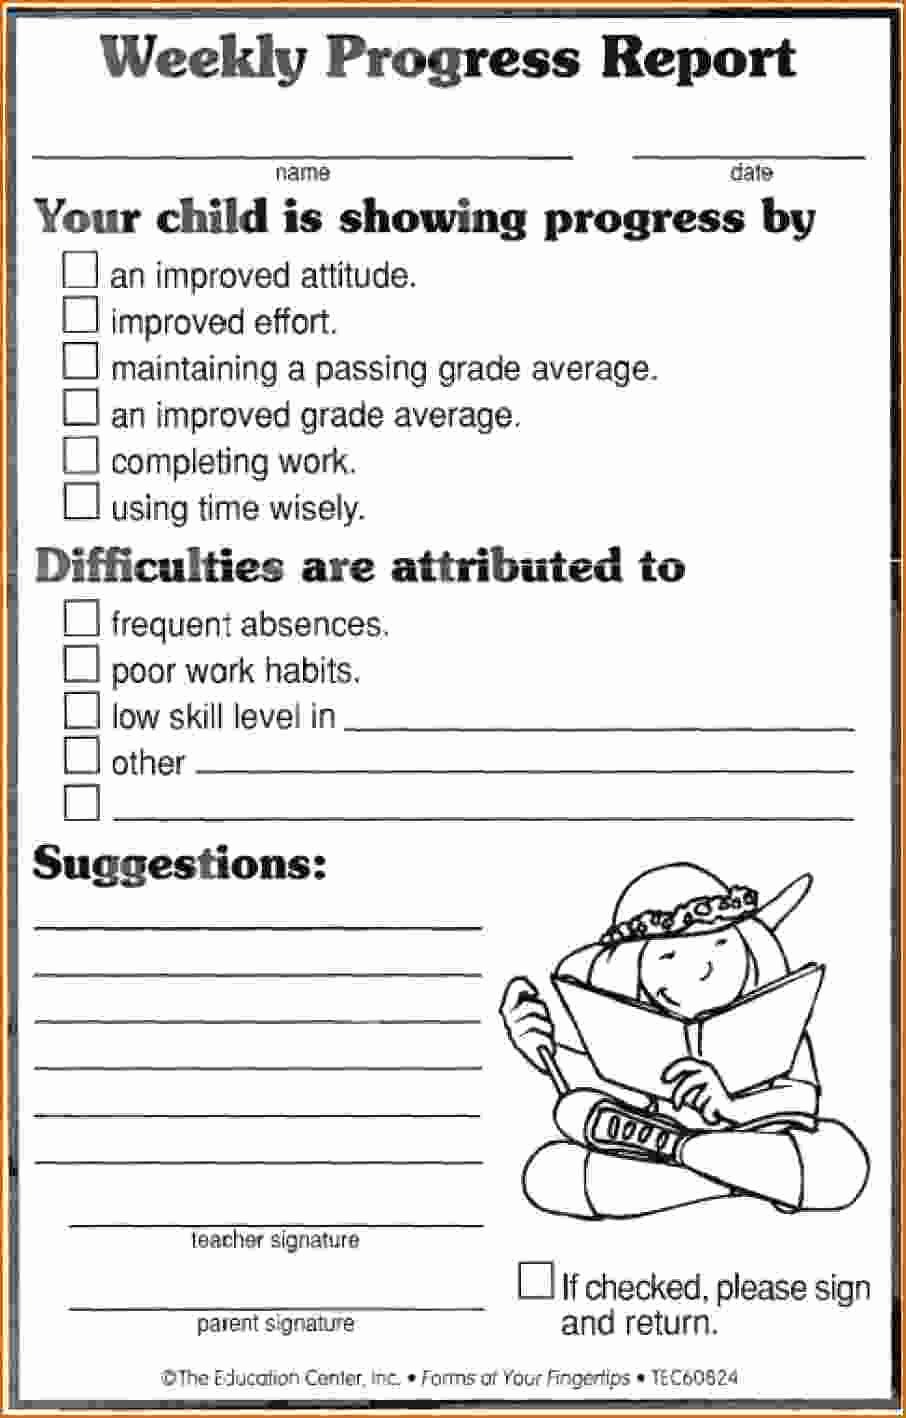 Elementary Progress Reports Template Elegant 12 Weekly Progress Report Template